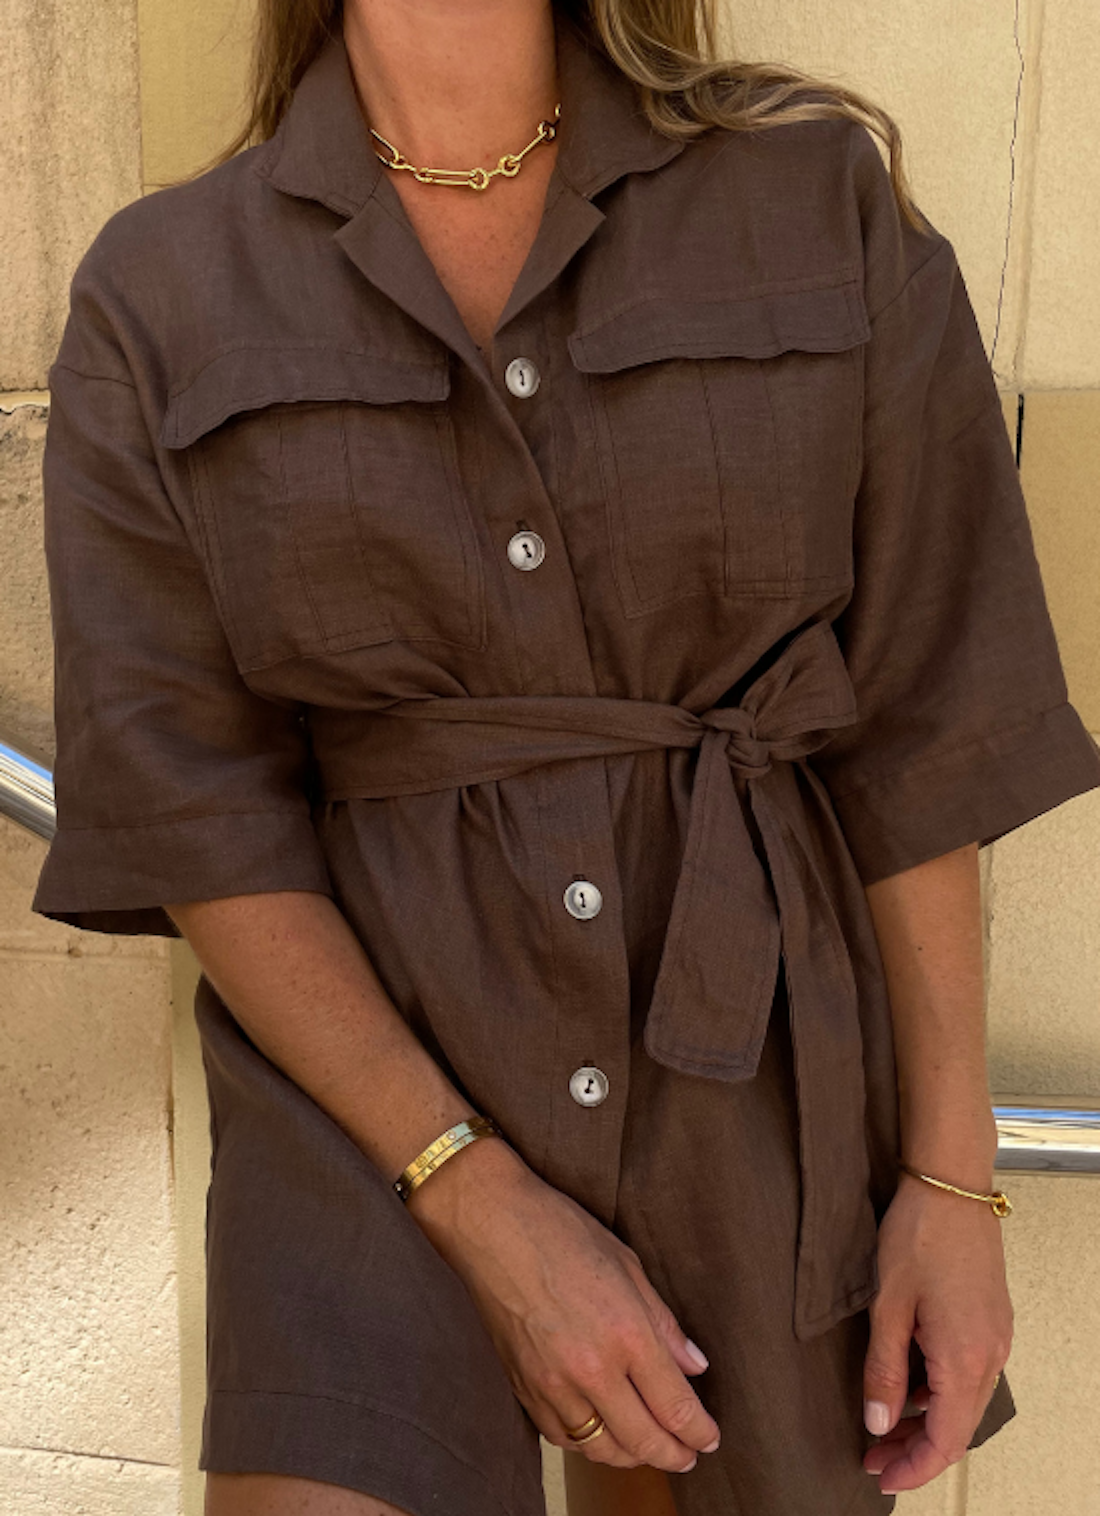 A woman wears a chocolate linen shirt dress paired with gold accessories.